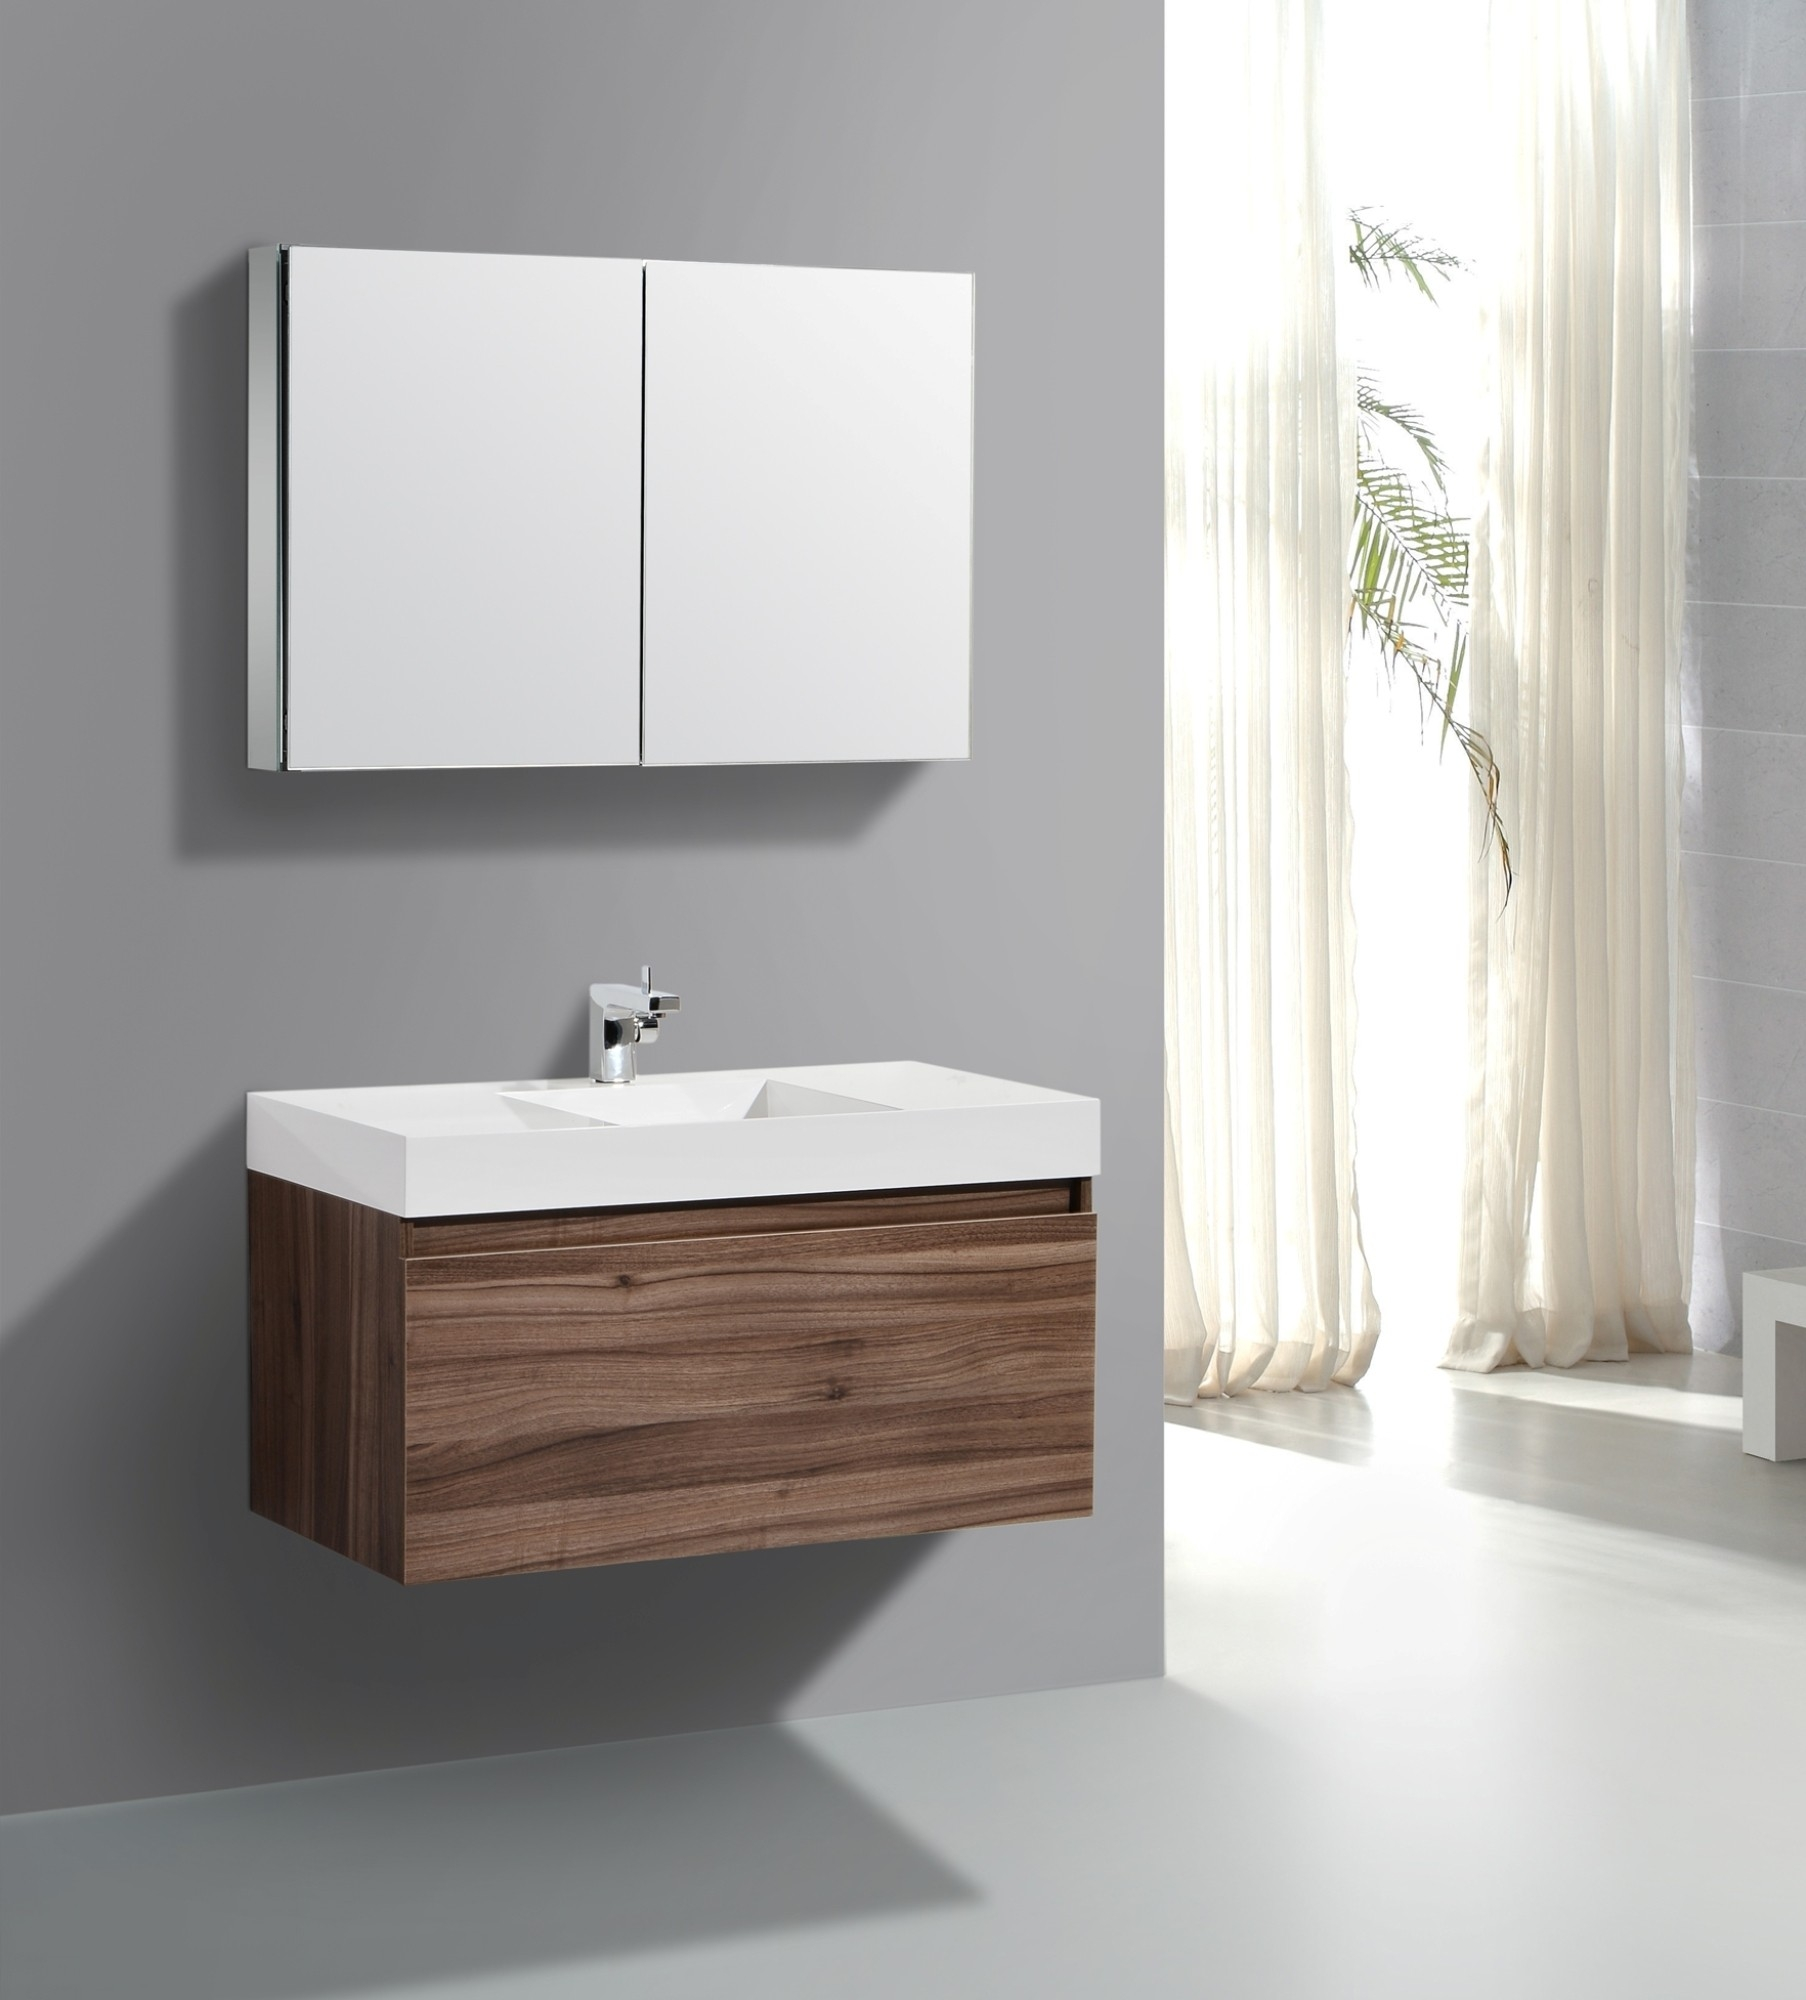 Wall Hung Bathroom Sinks/Vanities